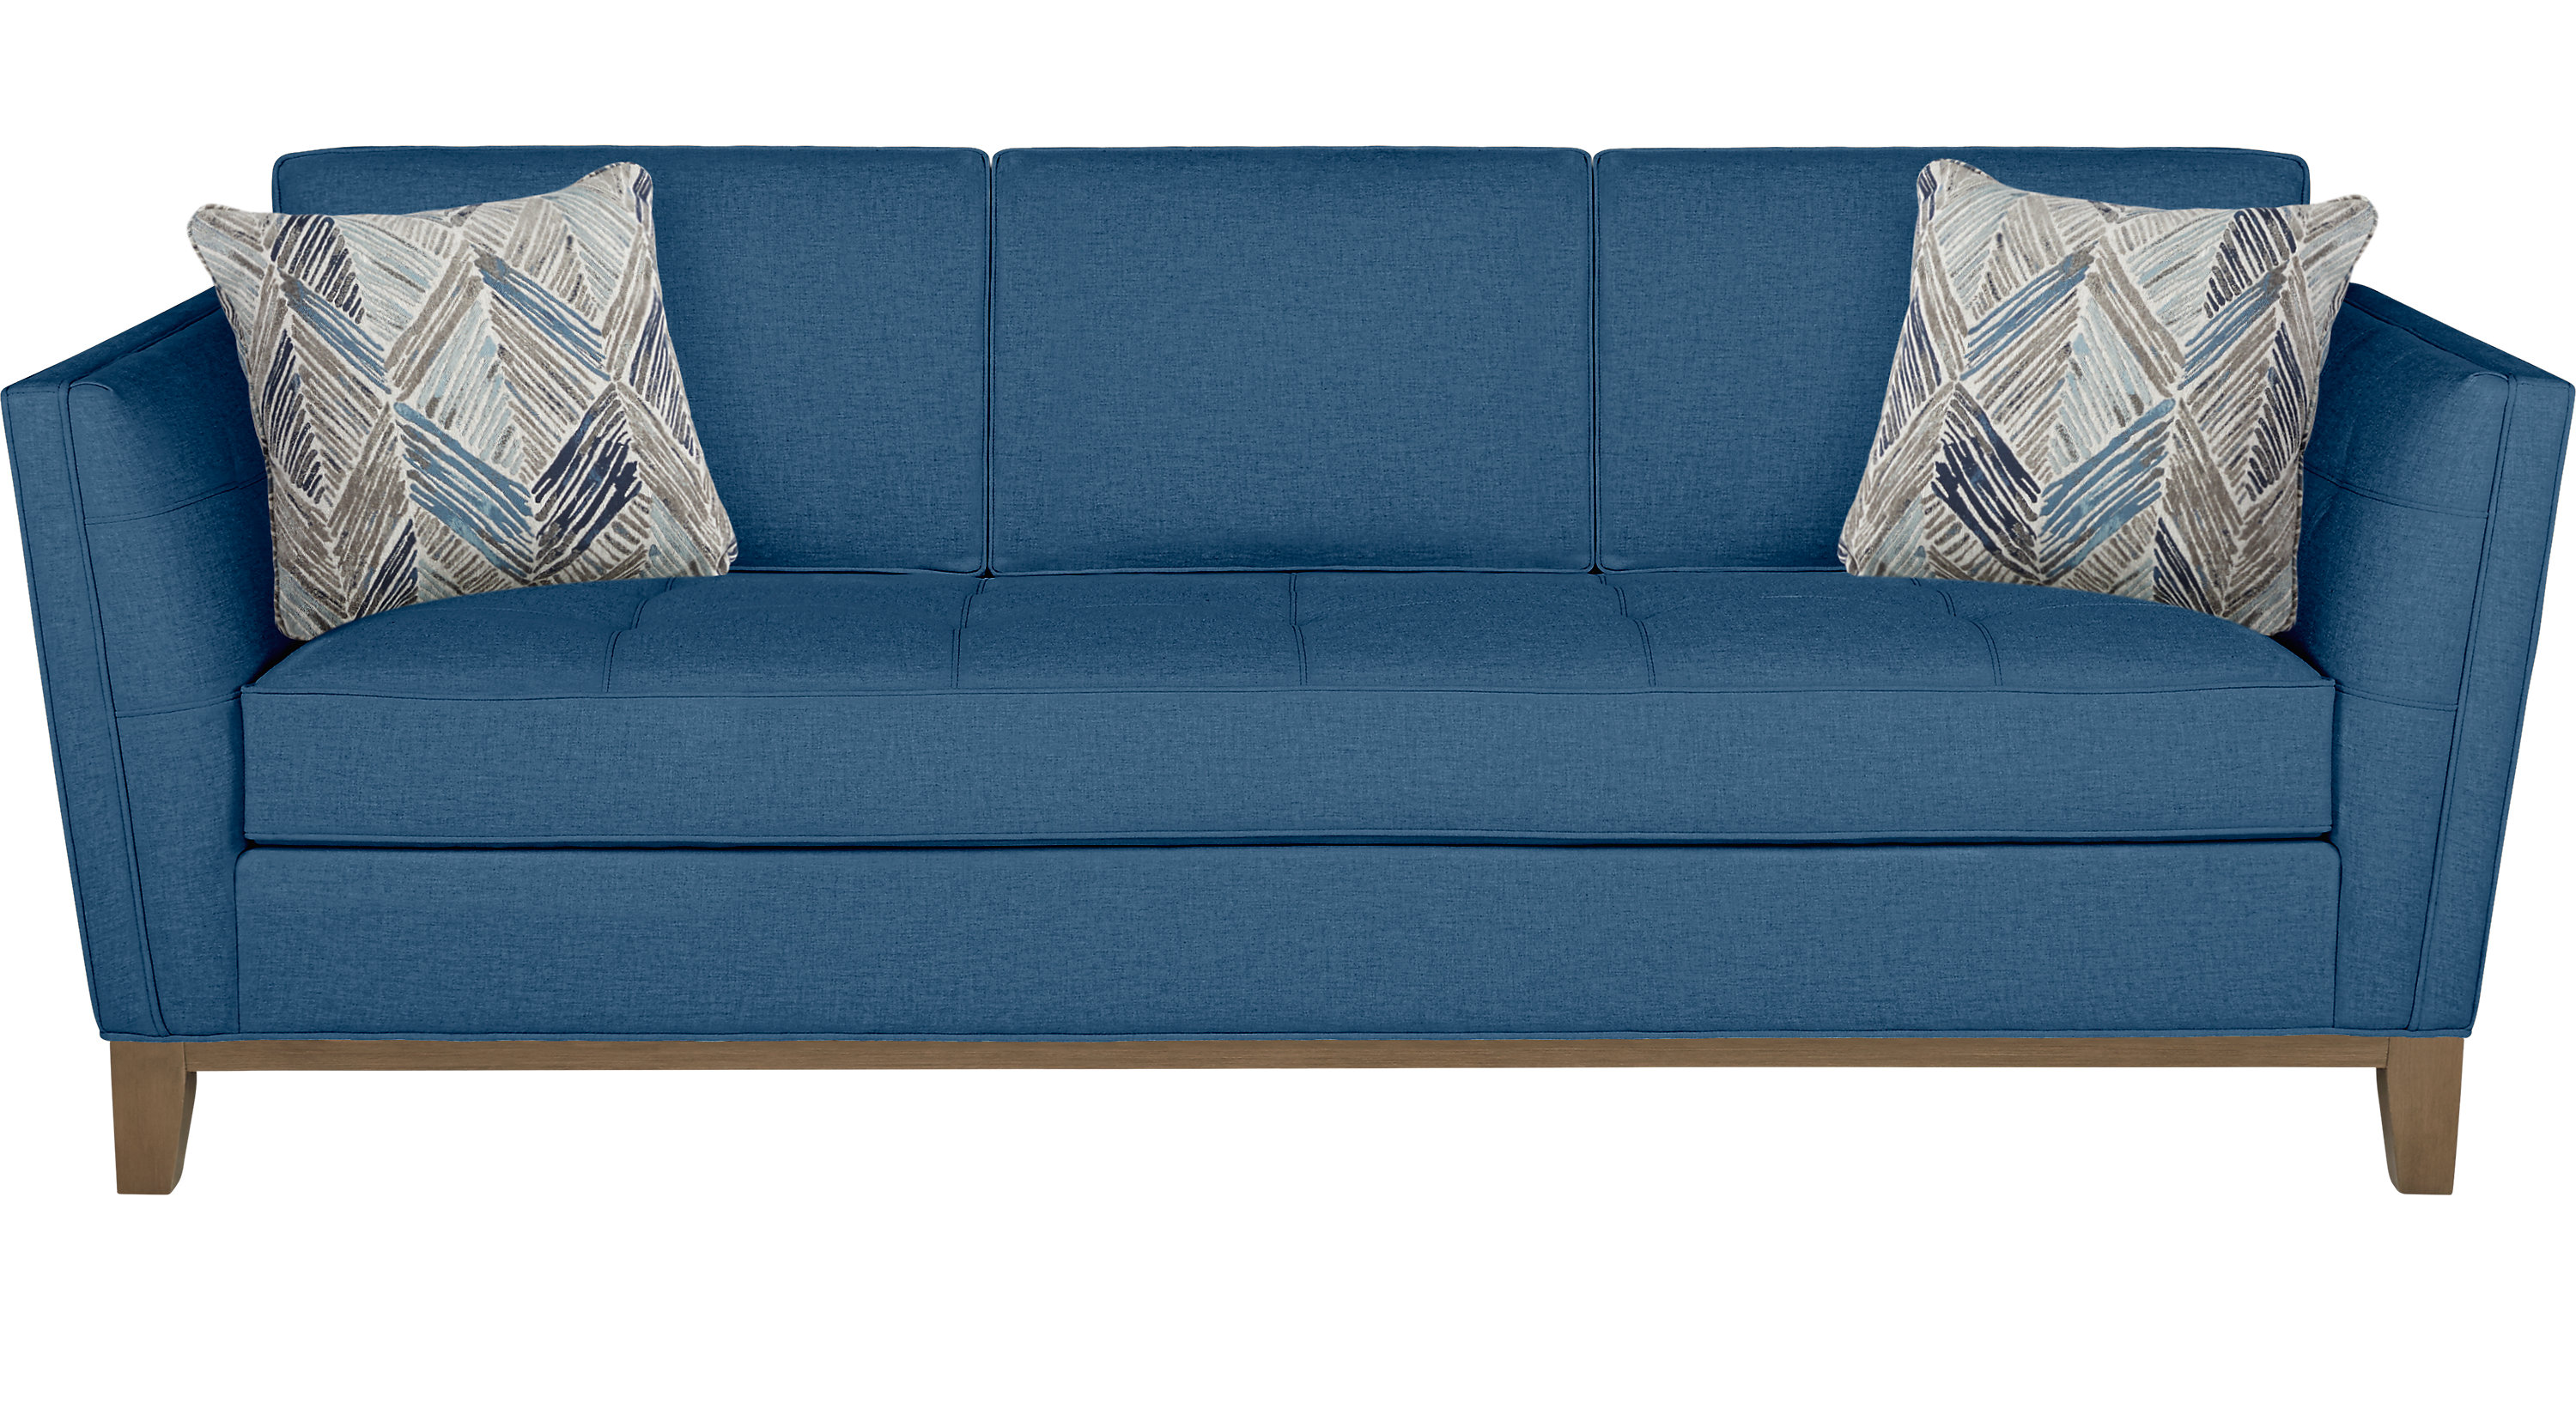 Blue Sofas & Couches Navy Royal Light & Dark